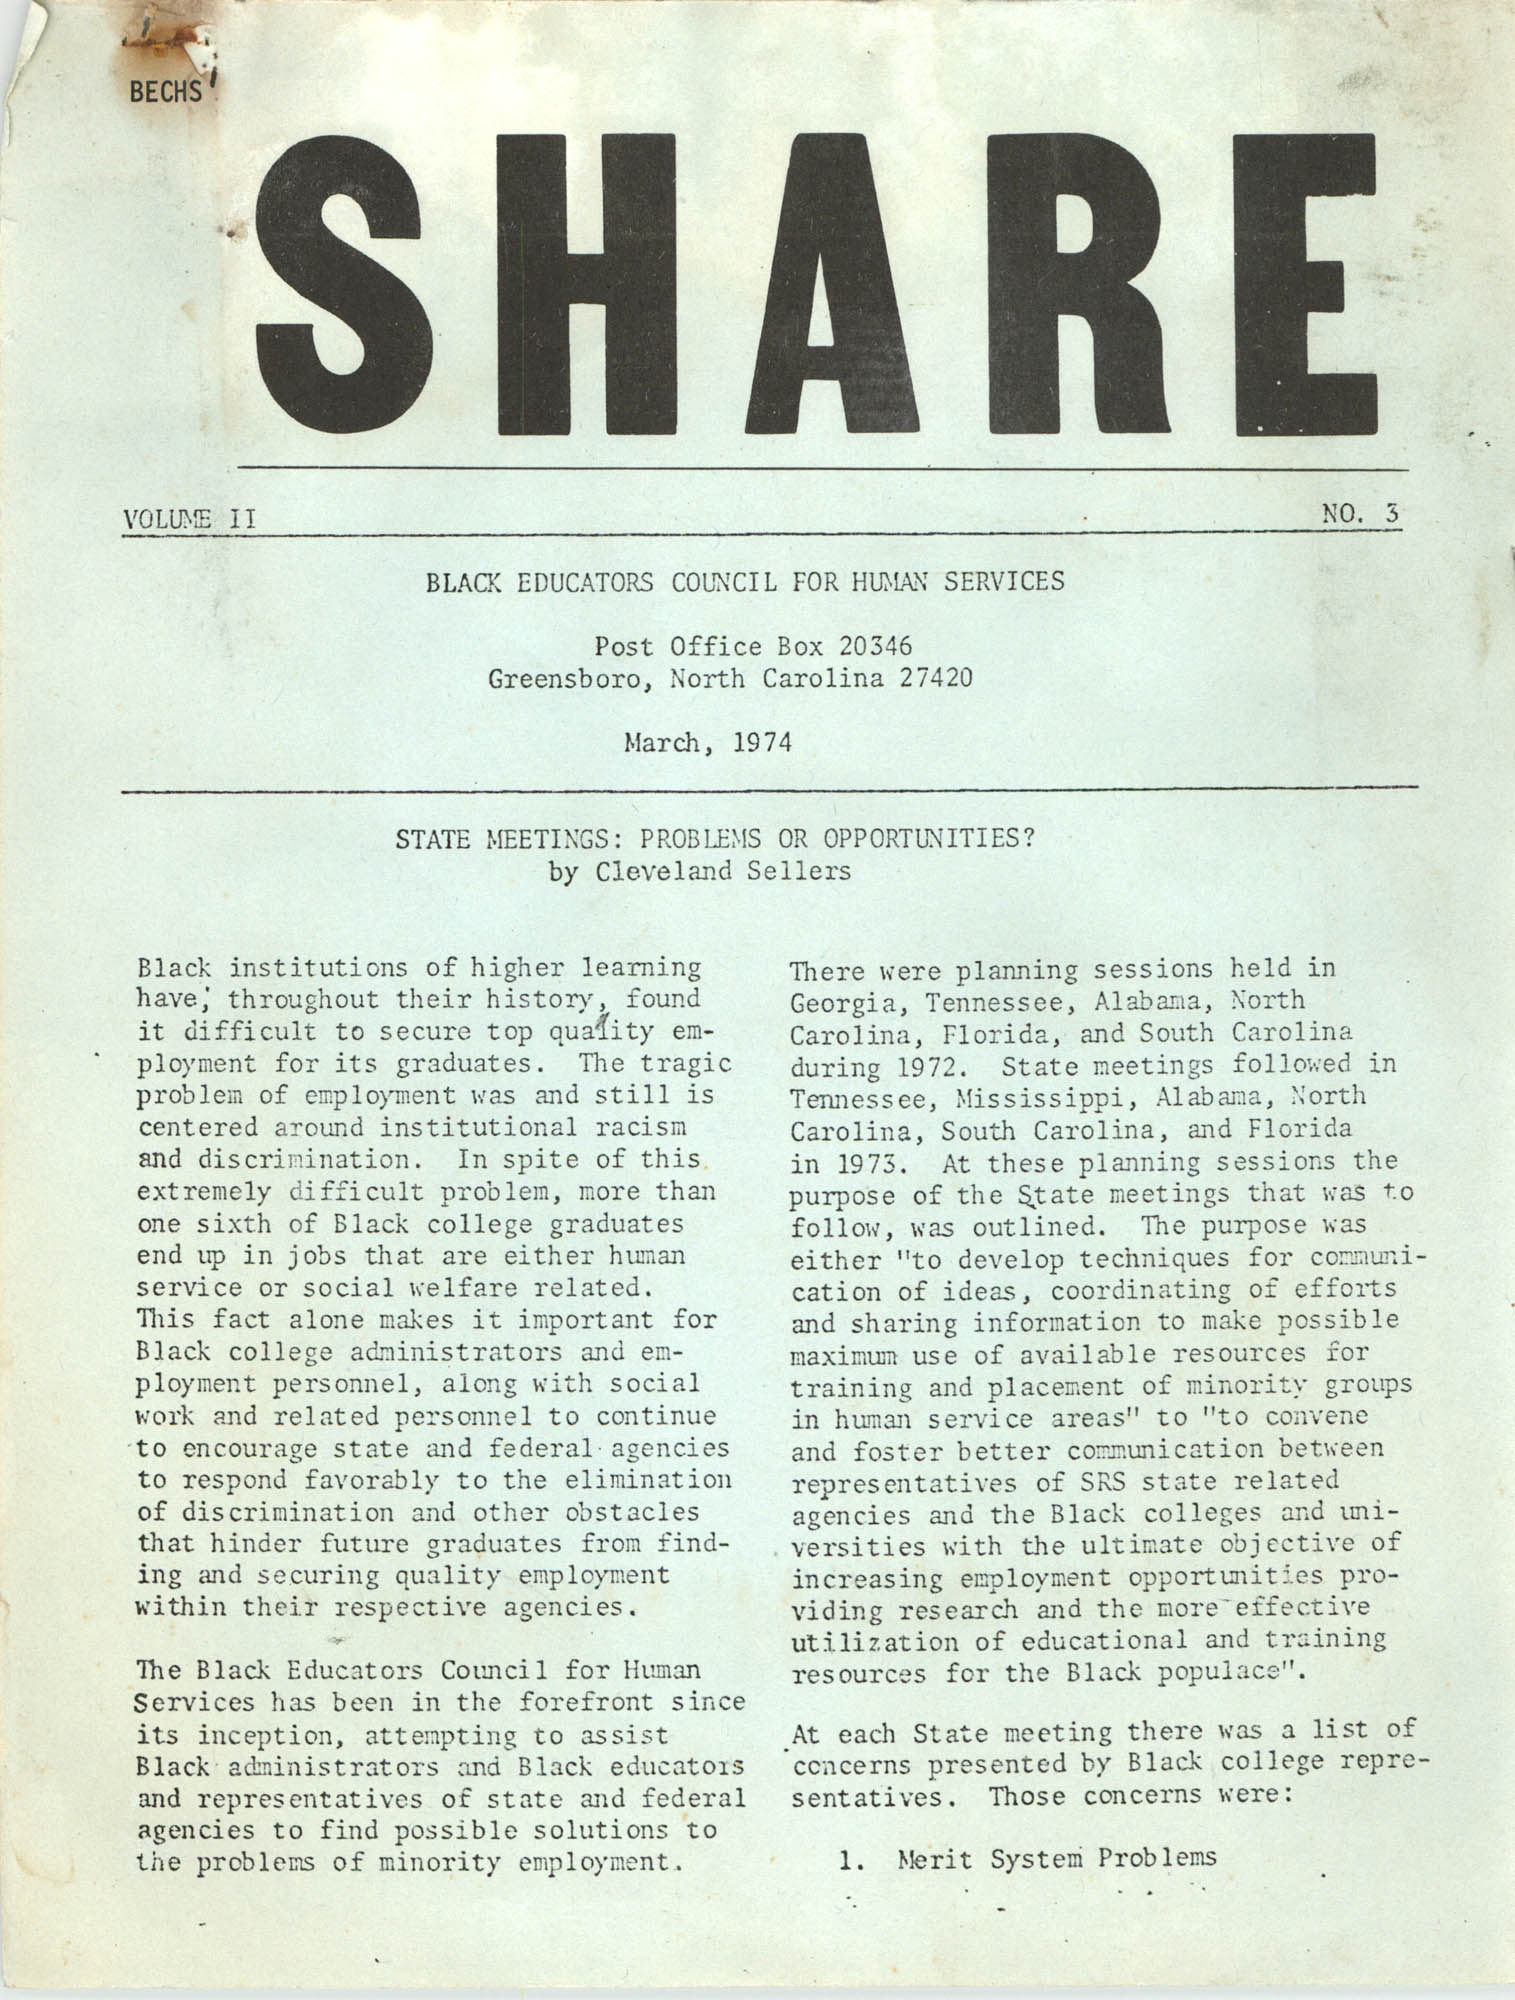 SHARE, Volume II, Number 3, March 1974, Page 1